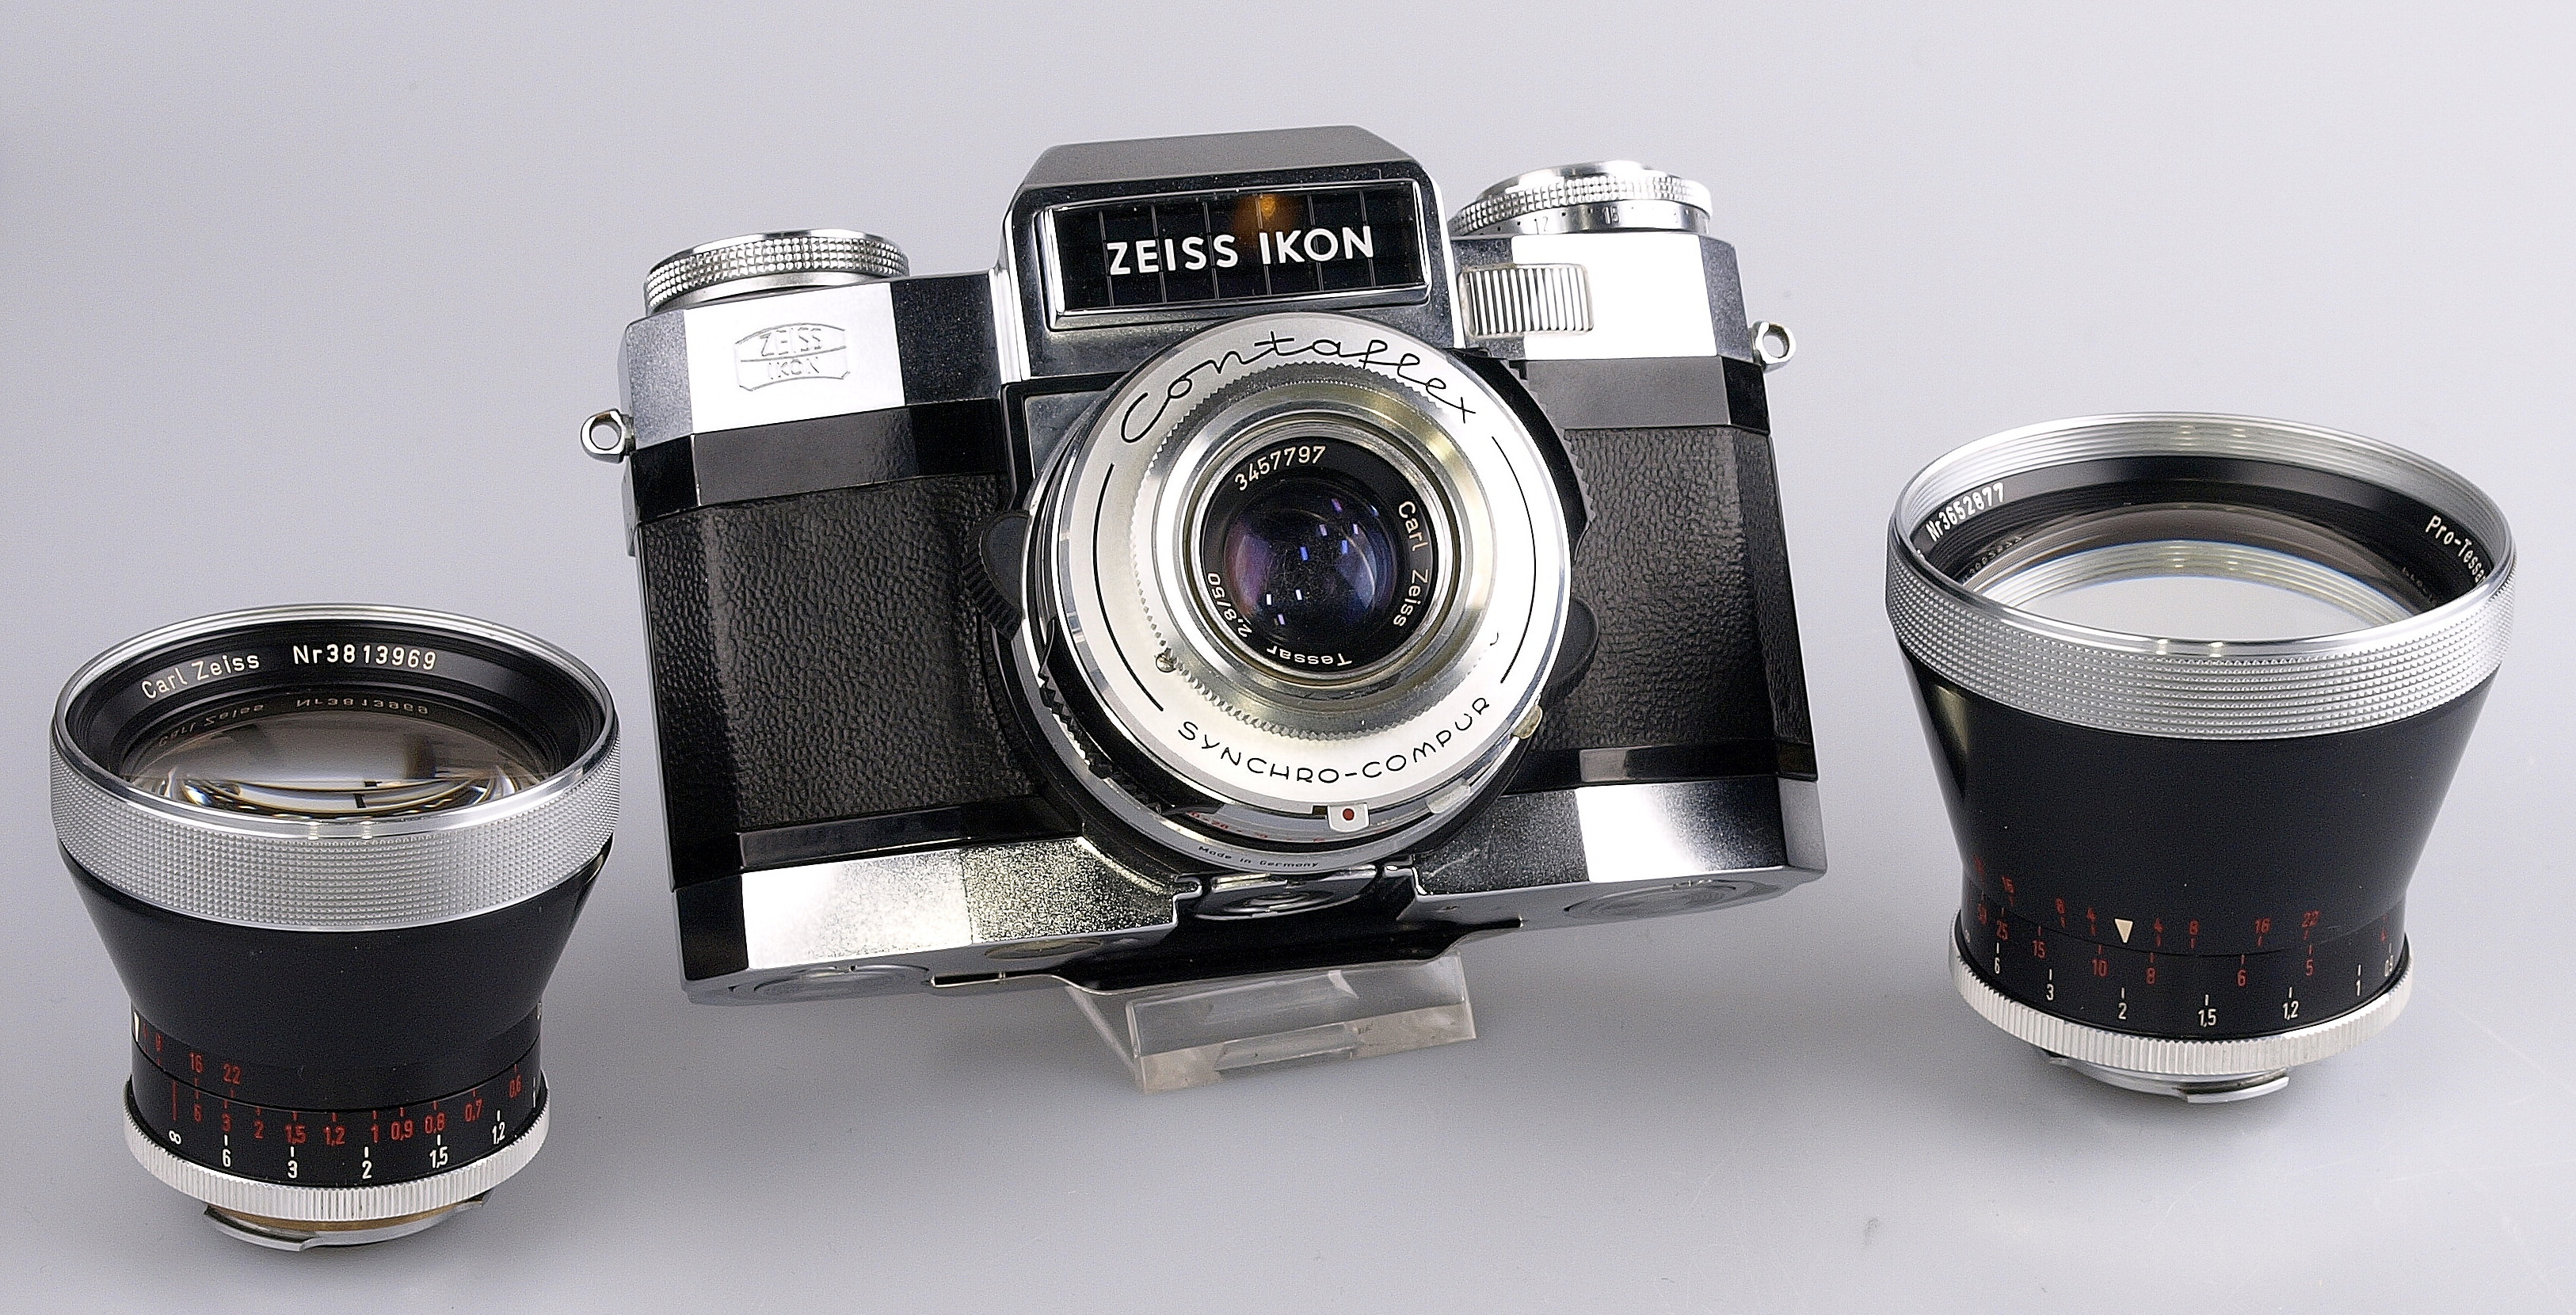 Zeiss Ikon Contaflex Super B with 3 lenses and interchangeable film back  with cassette  Nice set